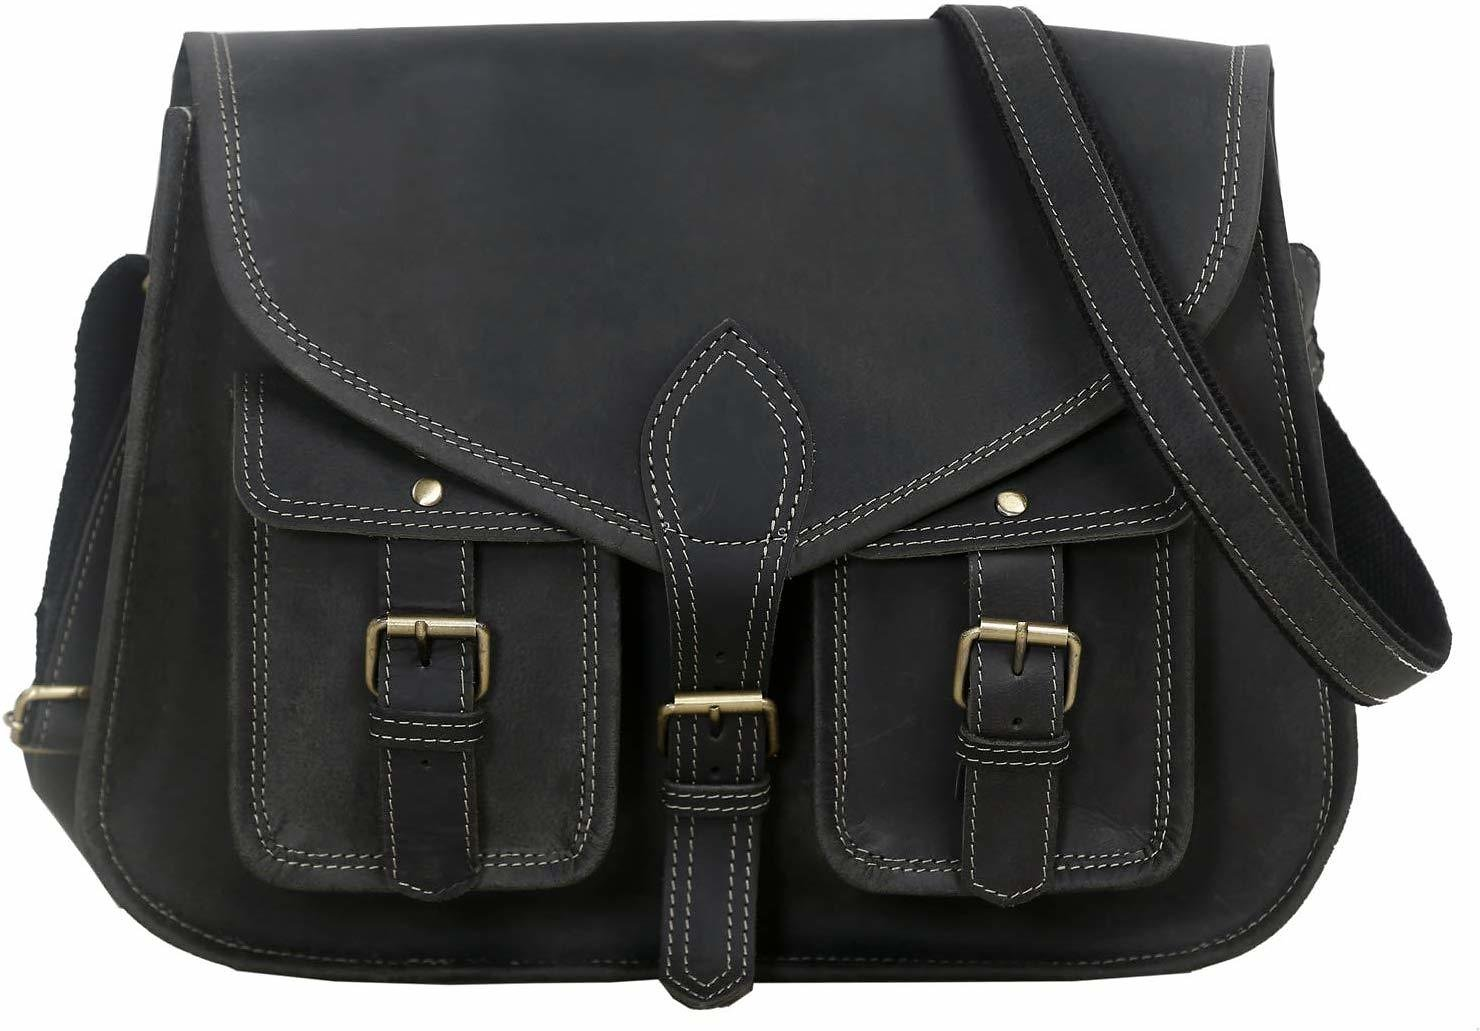 14 Inch Leather Purse for Women / Shoulder Bag / Crossbody Satchel - Genuine Leather (Charcoal Black Buffalo Leather)